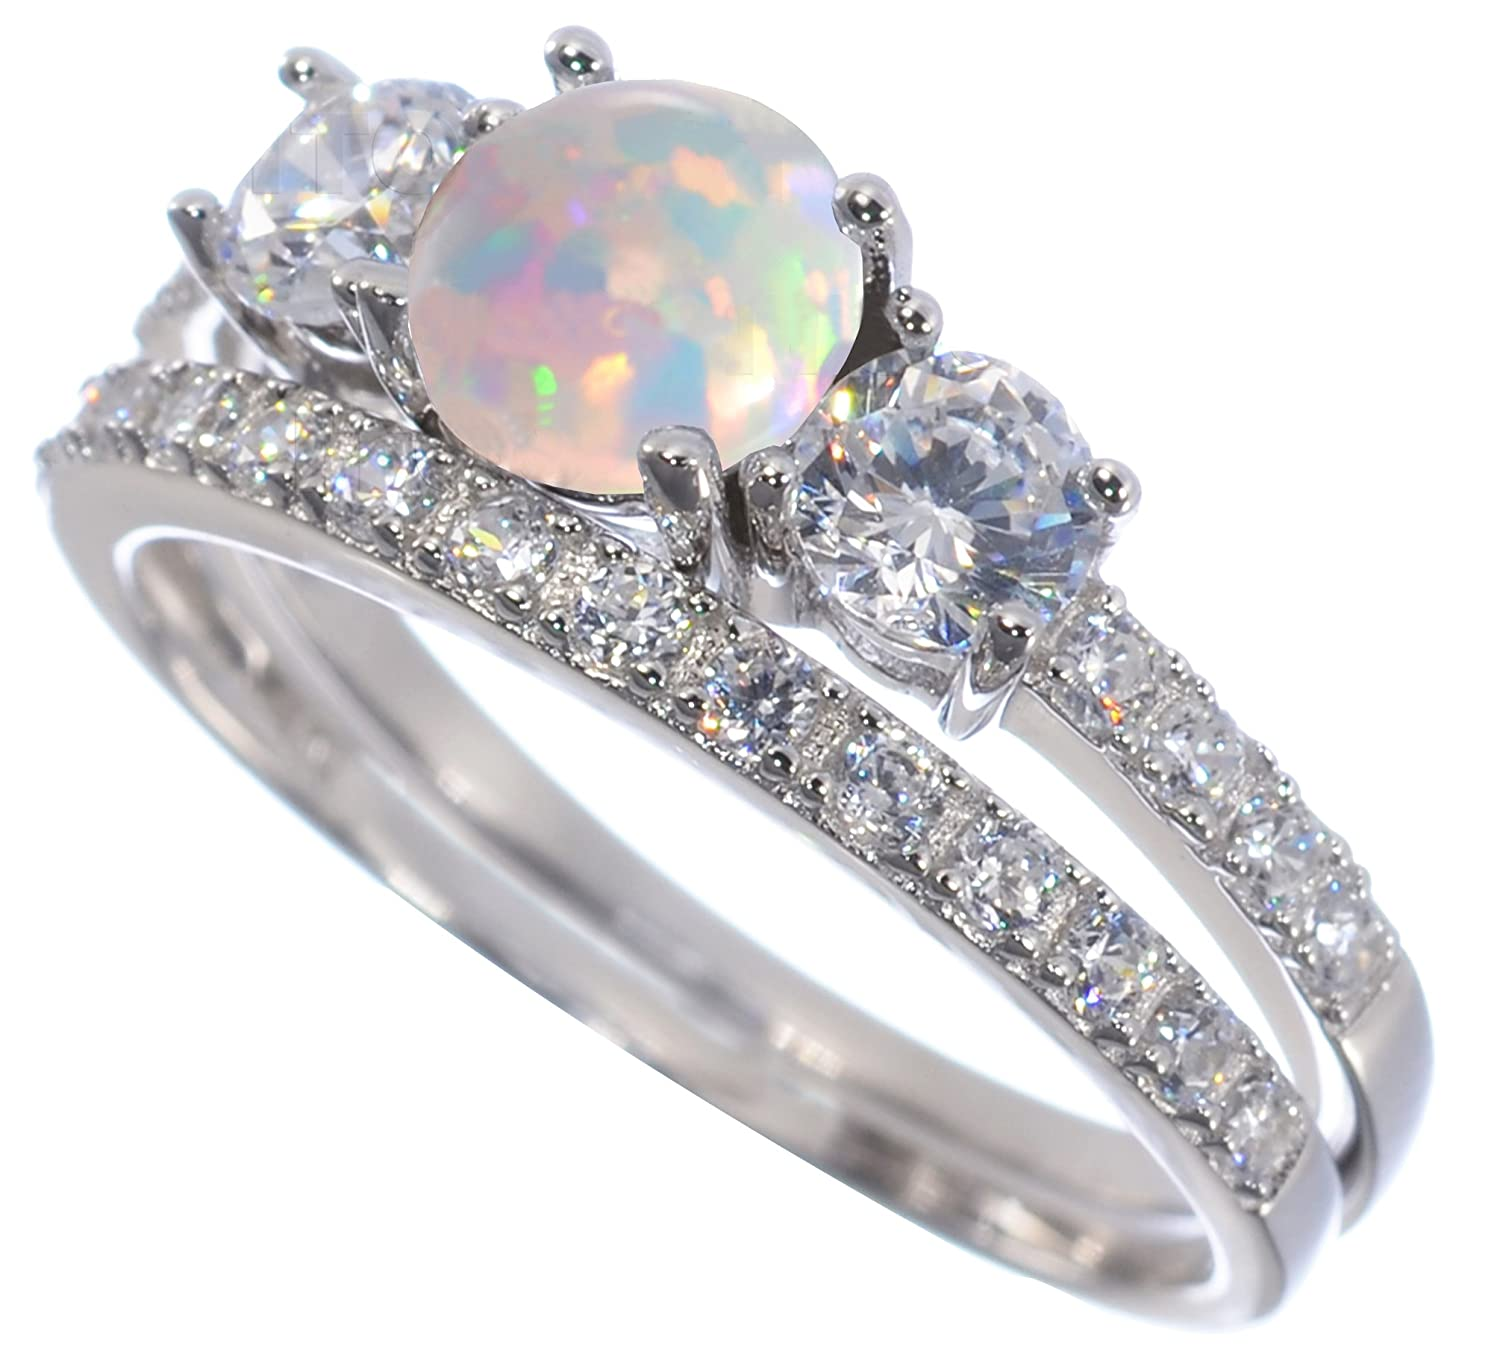 Round Triple Cut Simulated White Fire Opal CZ Ring Engagement Bridal Set 925 Sterling Silver